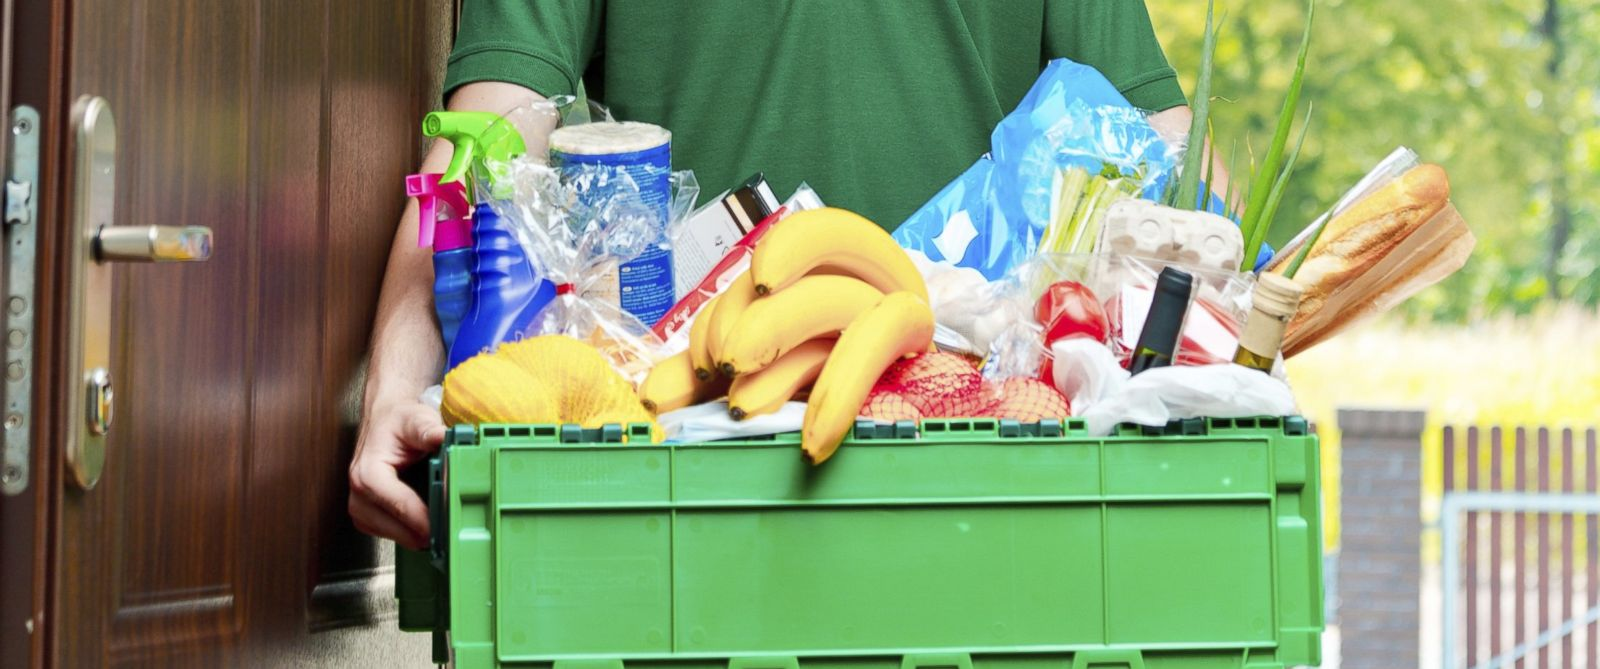 PHOTO: A man delivering groceries to a home is pictured in this stock image.